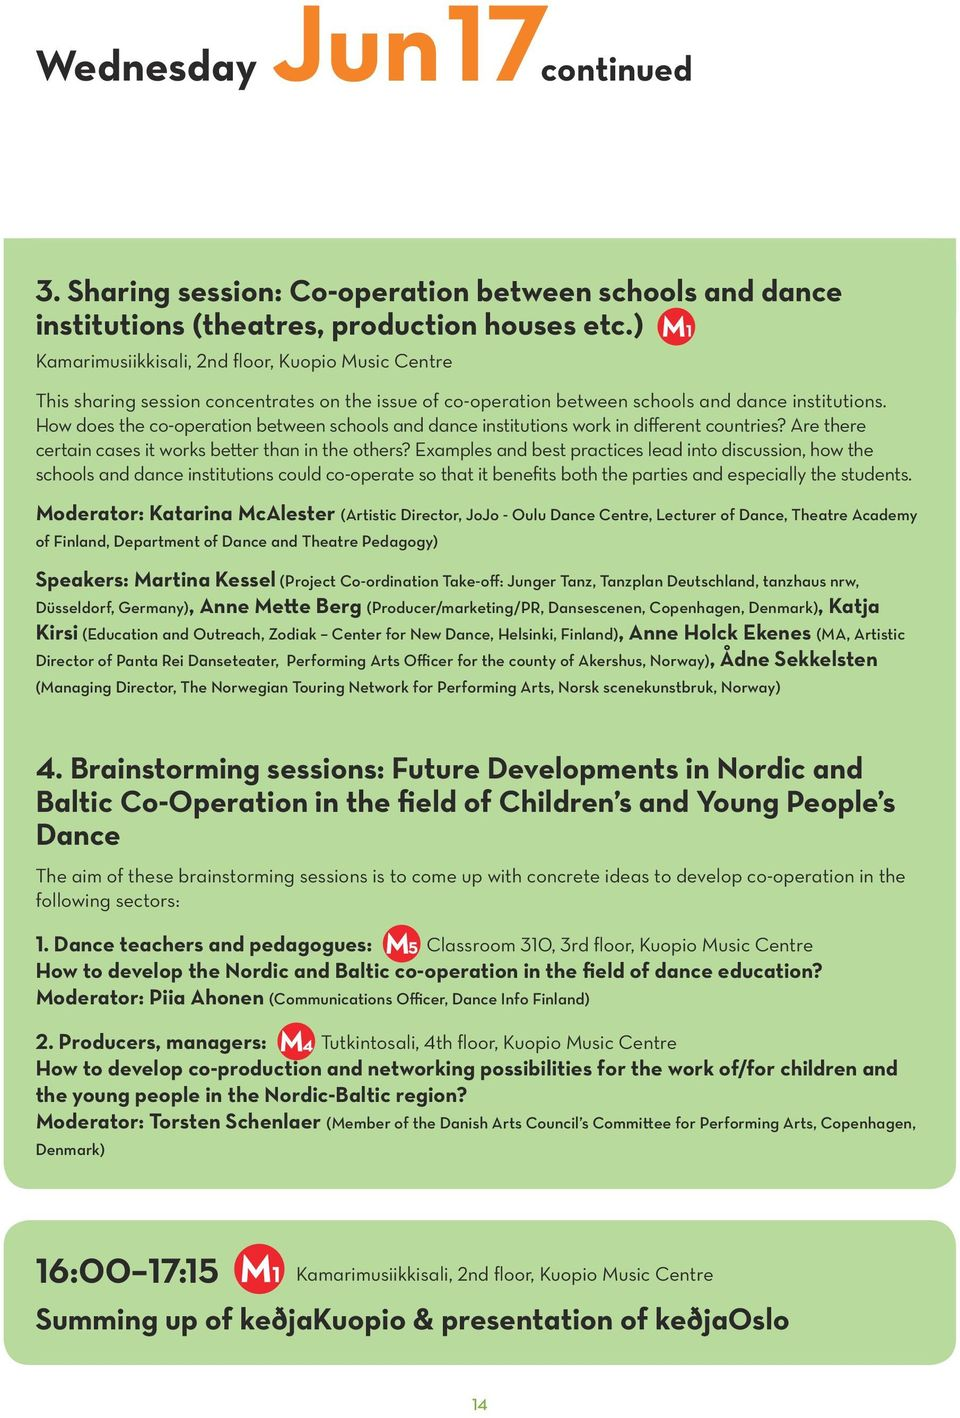 How does the co-operation between schools and dance institutions work in different countries? Are there certain cases it works better than in the others?